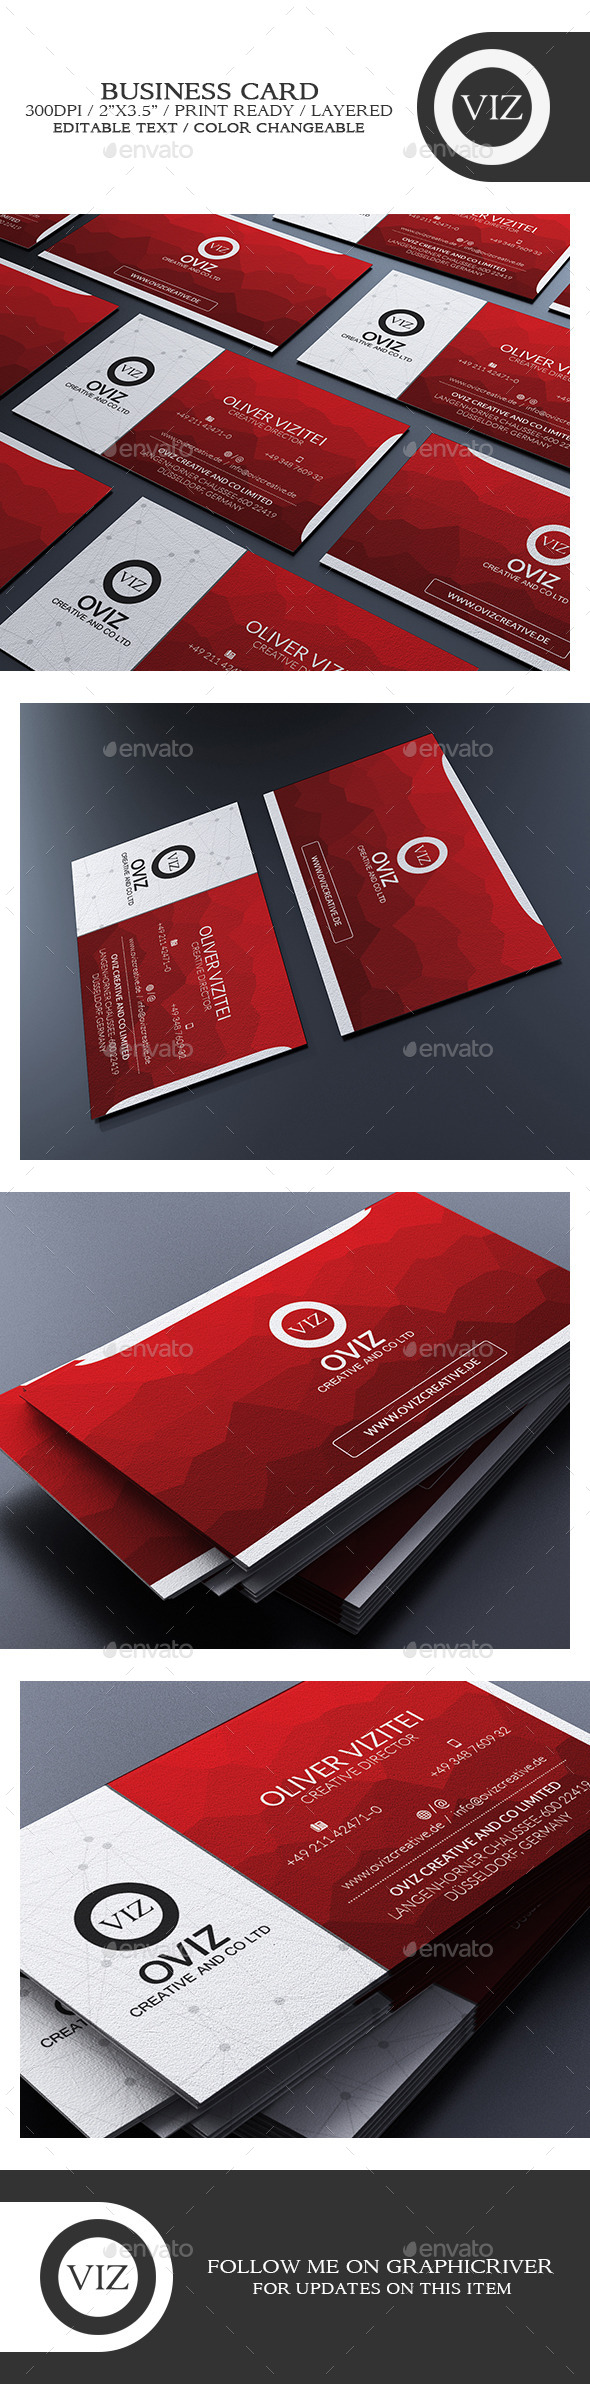 GraphicRiver Corporate Business Card 8796243